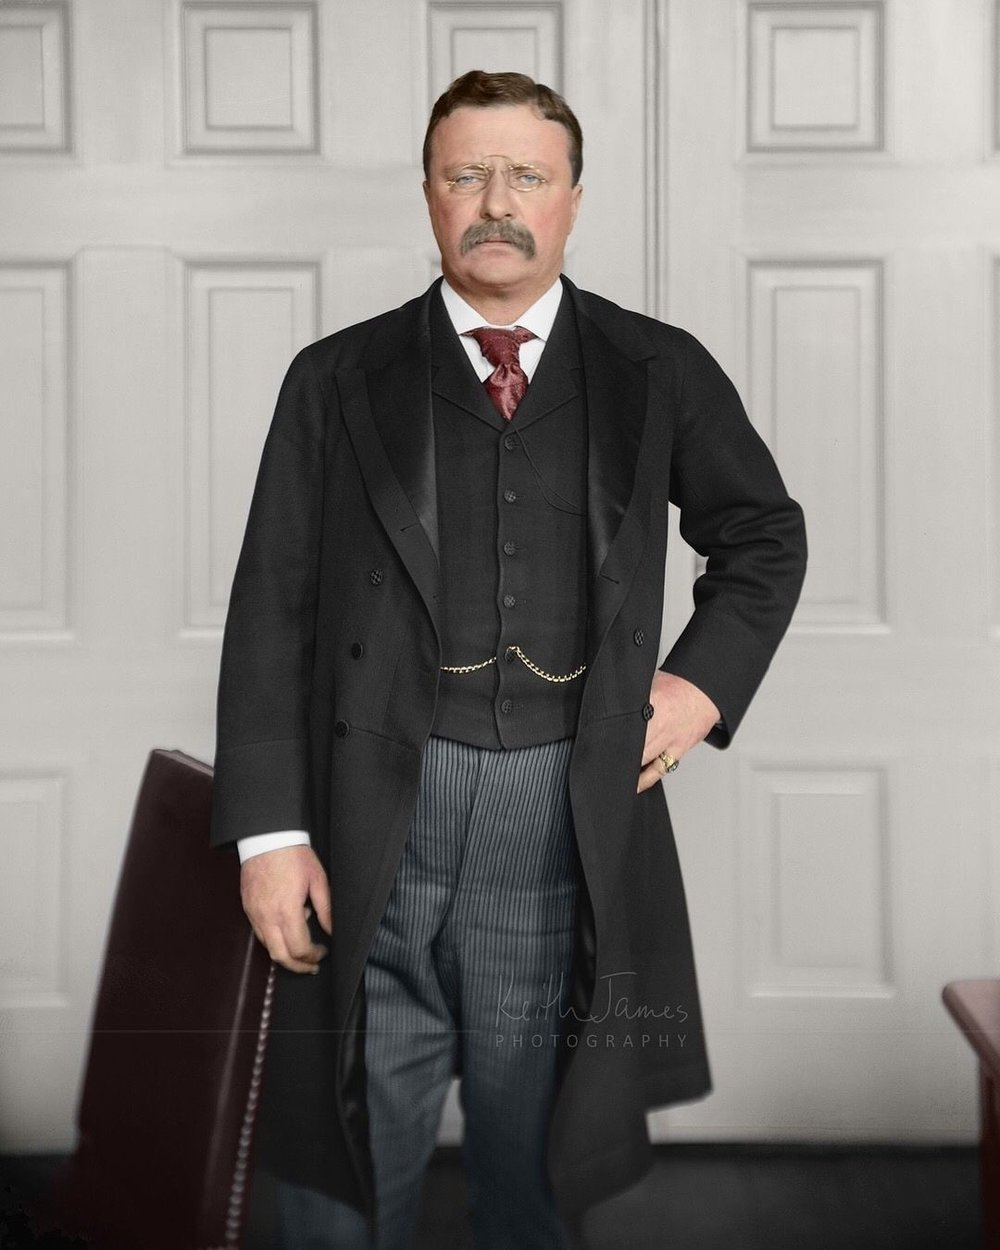 26th President of the United States, Theodore Roosevelt in the Oval Office. Date unknown. Colorization by  Keith James